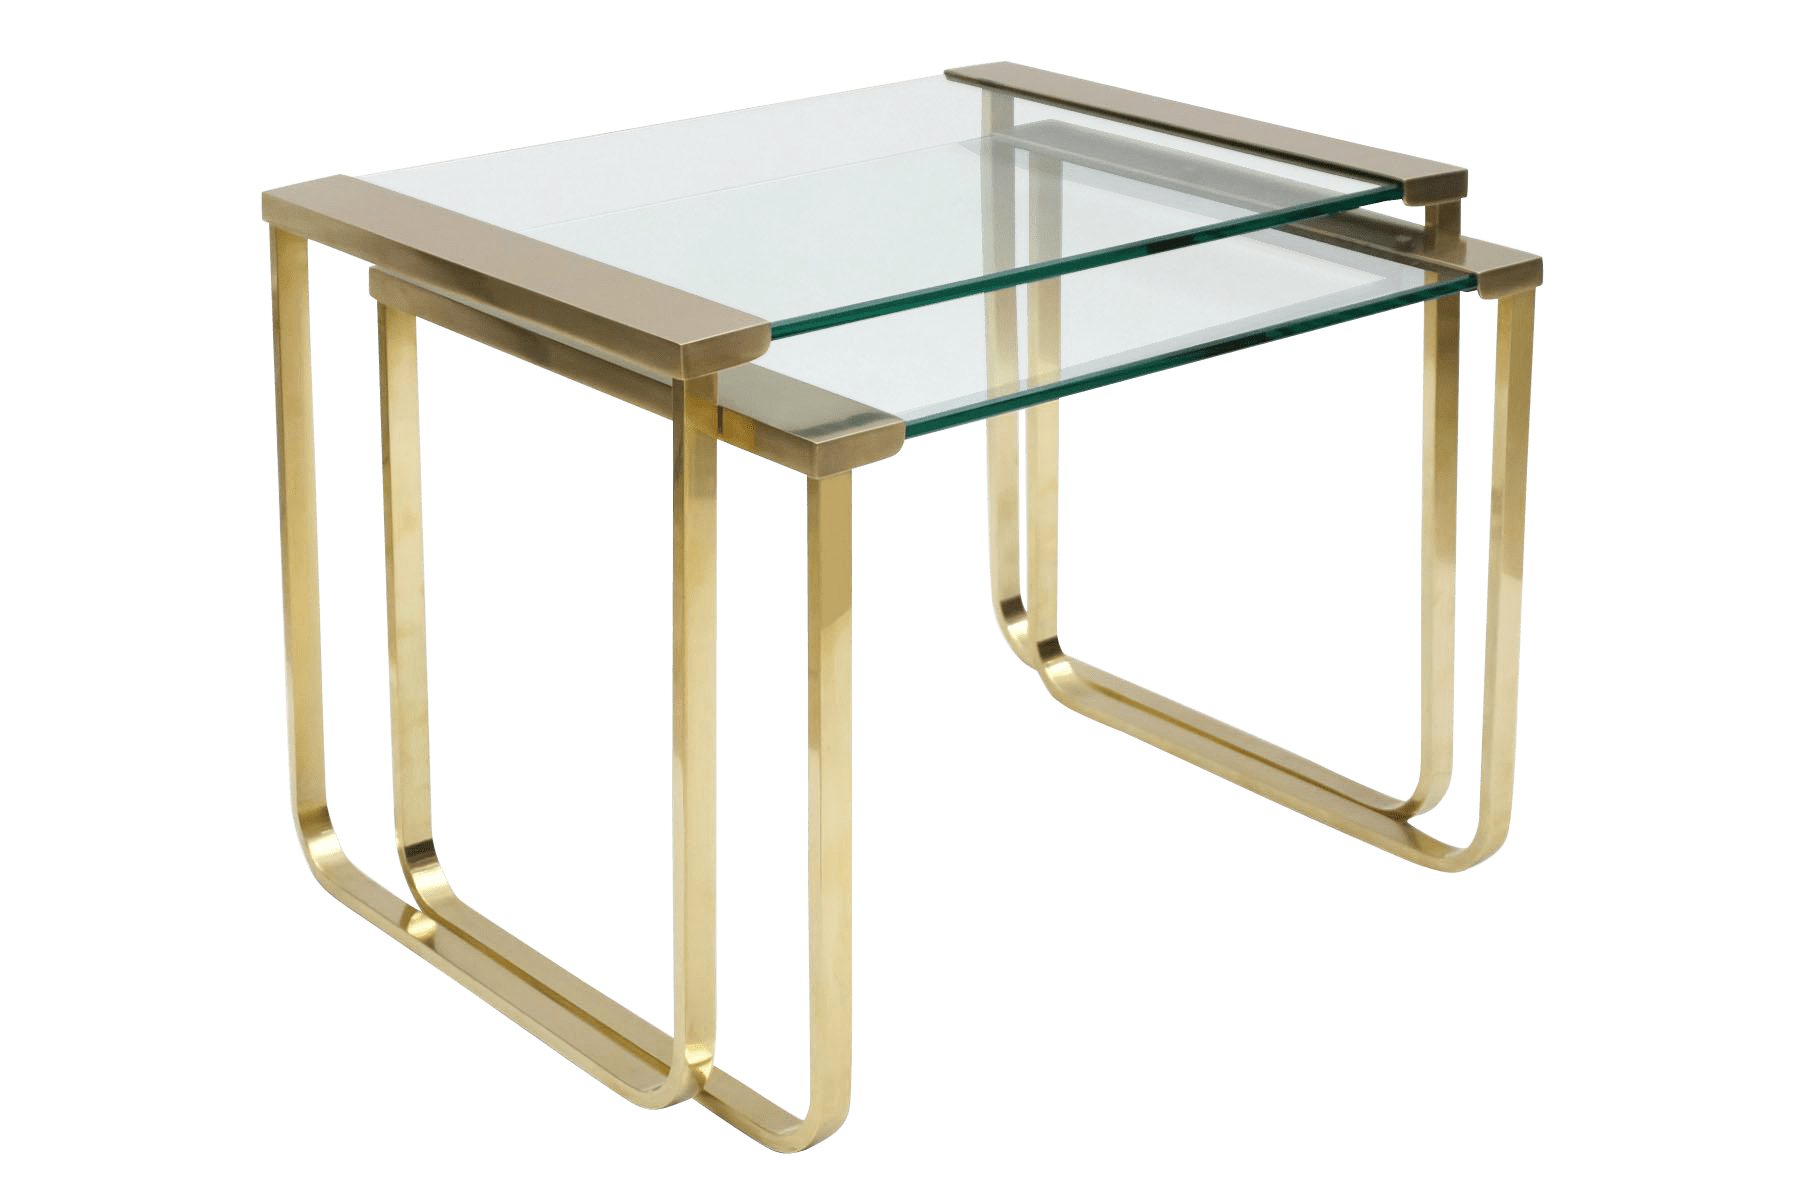 Glass Nesting Tables Italian Mid Century Brass And Glass Nesting Tables By Sergio Mazza For Cinova